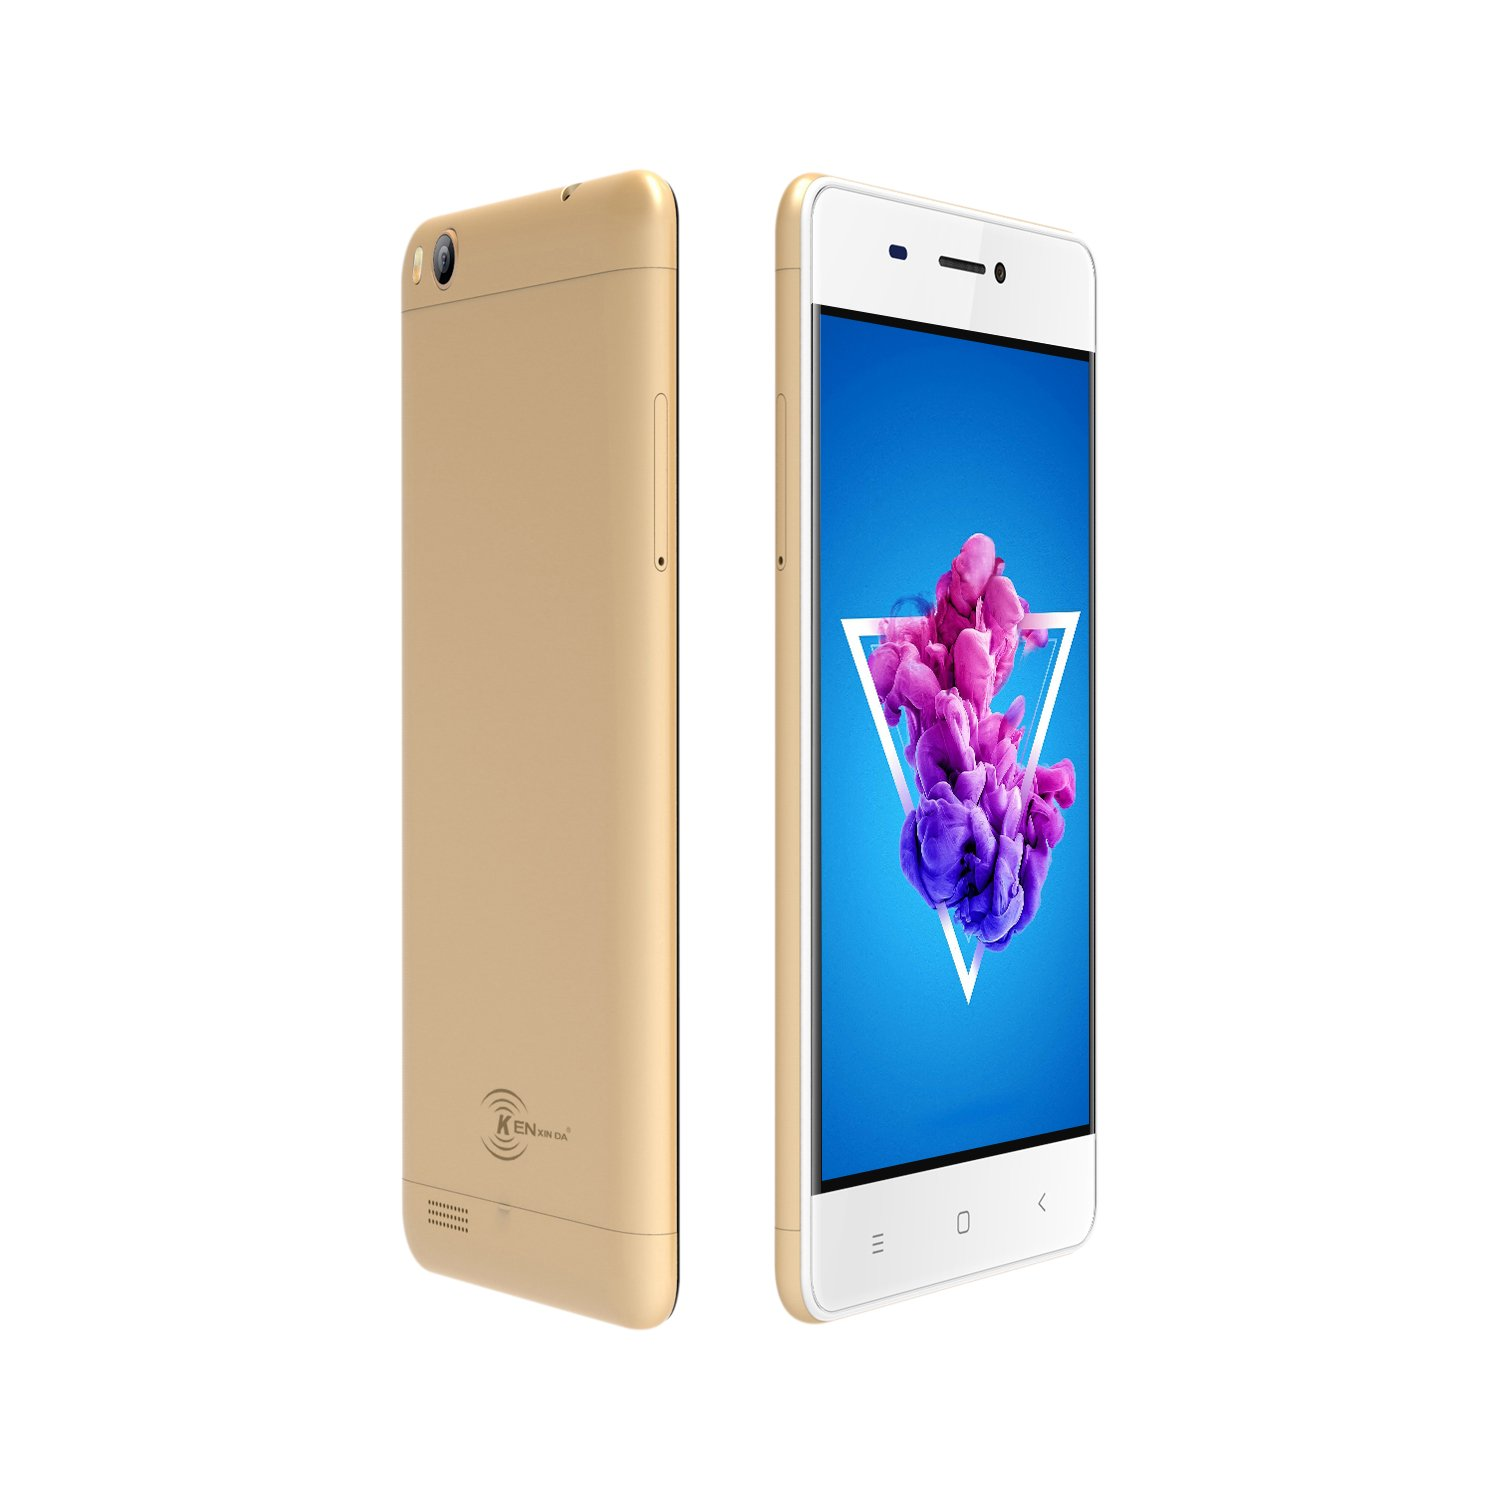 KEN XIN DA V5 3G Dual SIM Unlocked Smartphones 4.0 Inches 8GB+1GB Memory Android 7.0 Cell Phones Ultra Thin GSM Phone (Gold)